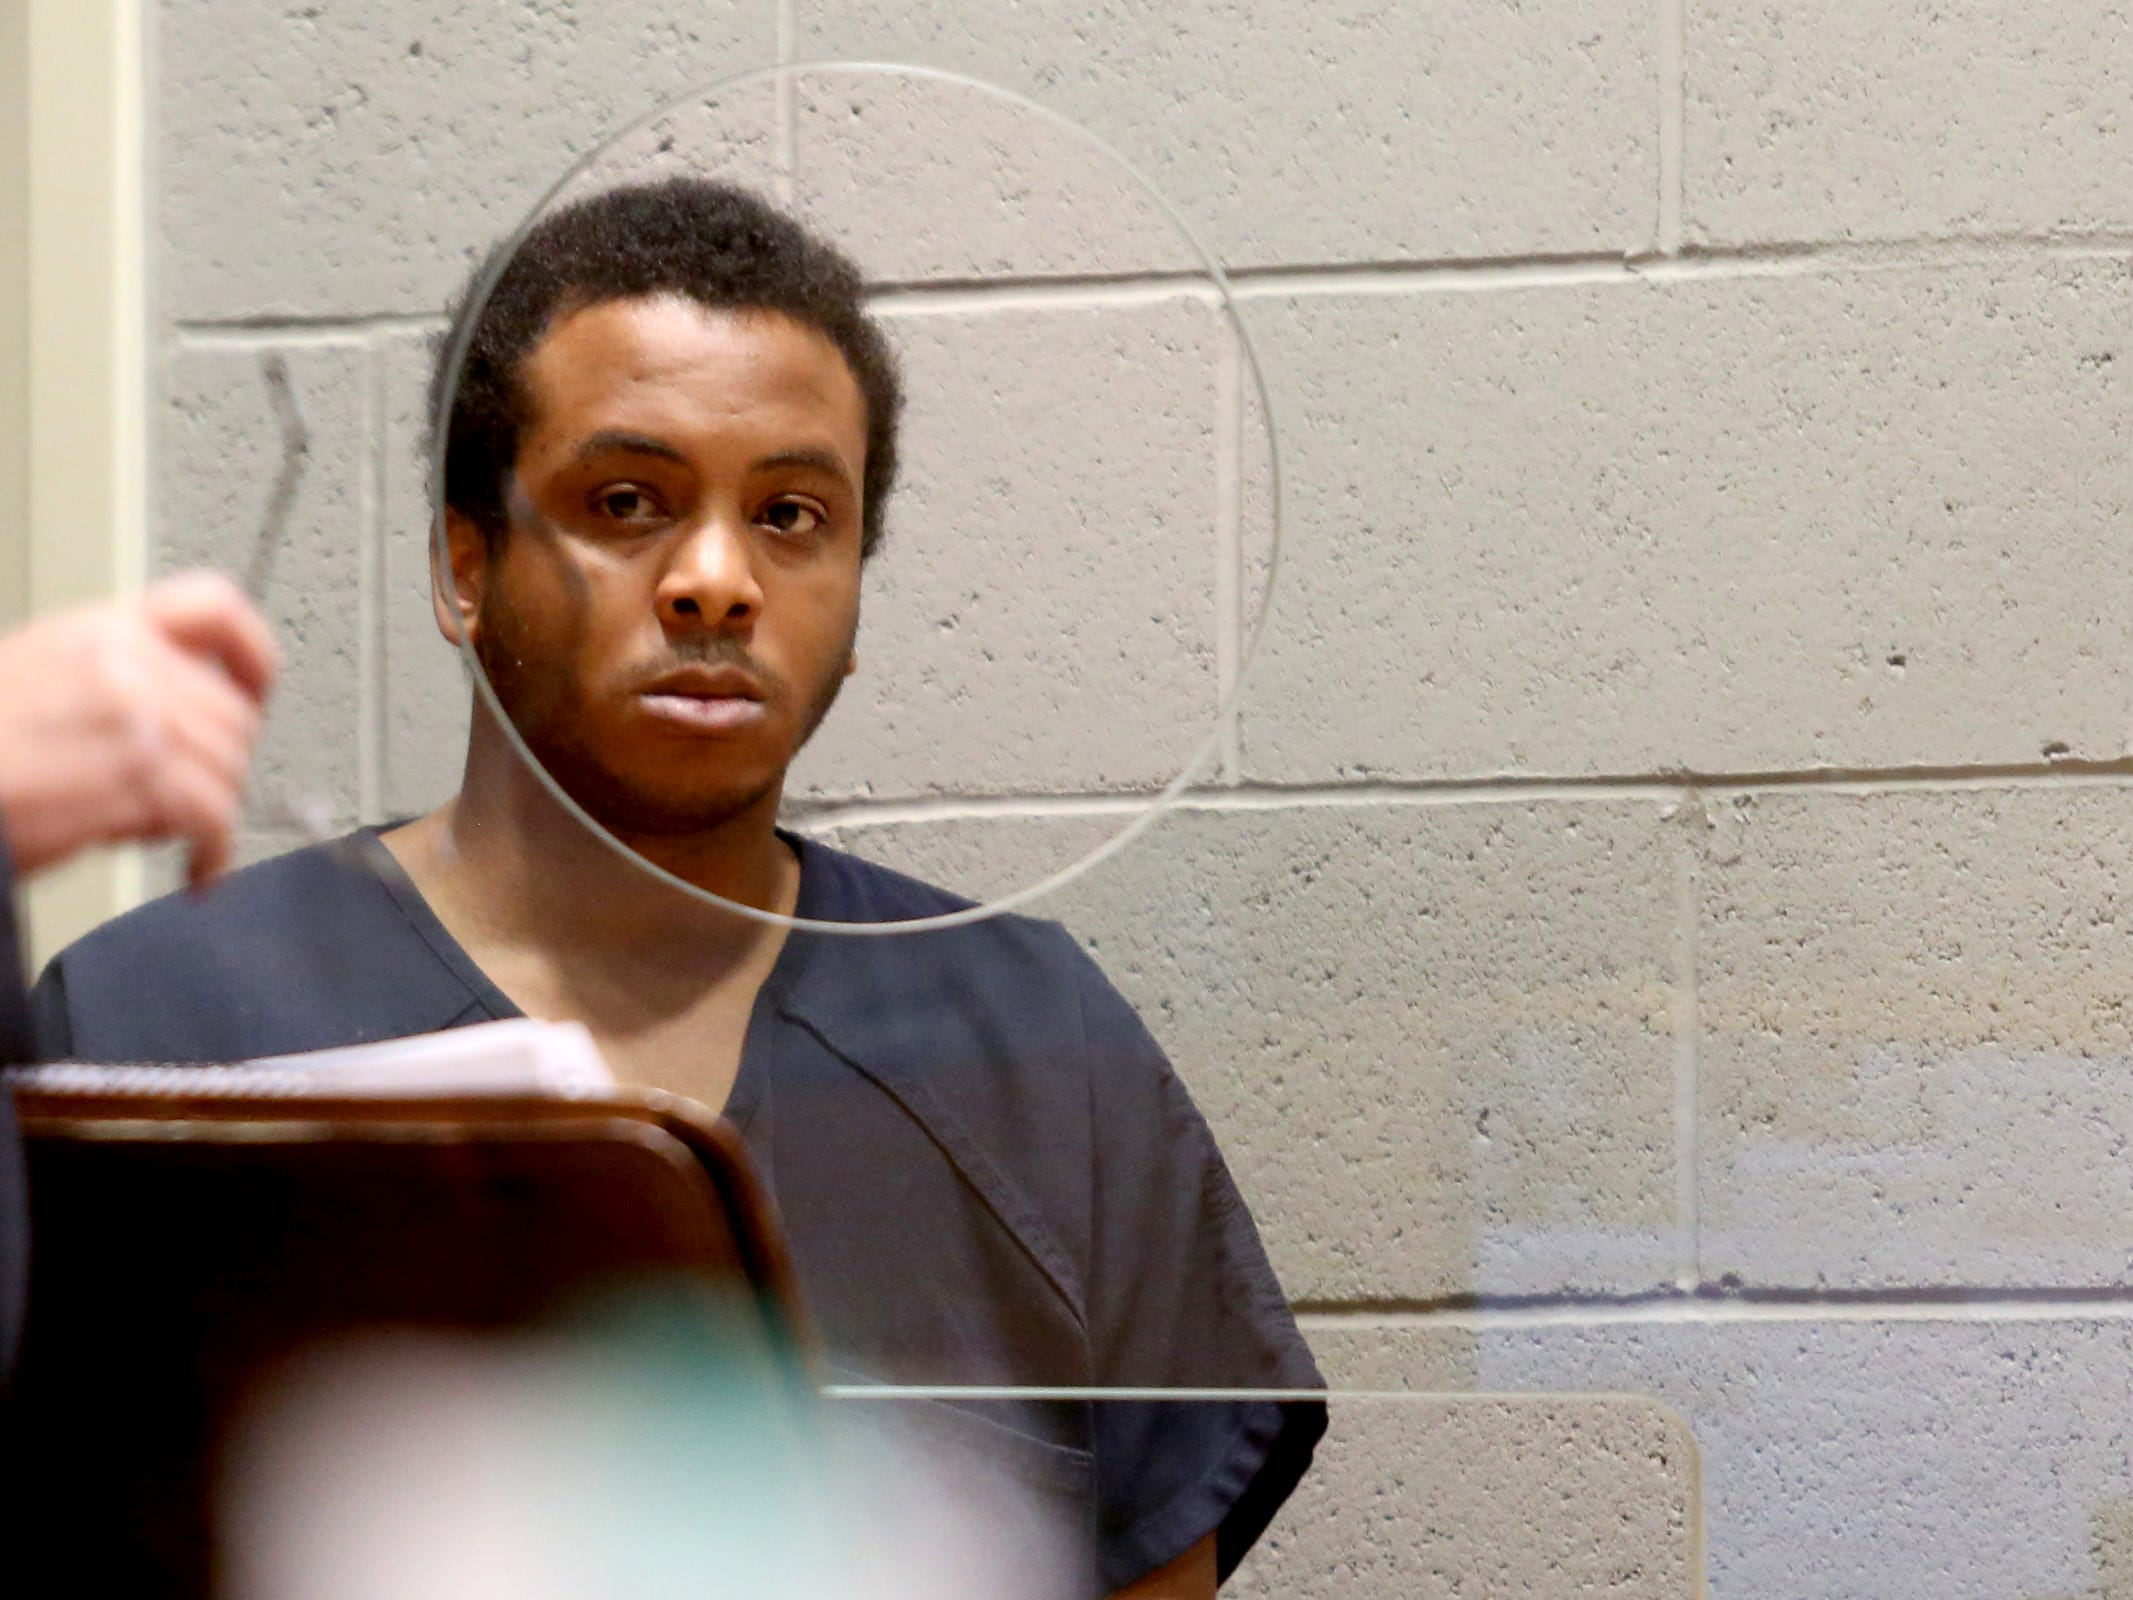 Curtis Welch appears for his arraignment on two aggravated murder charges and one attempted aggravated murder charge at the Marion County Court Annex in Salem on May 9, 2019. He and another man charged in the shooting are both being held without bail.